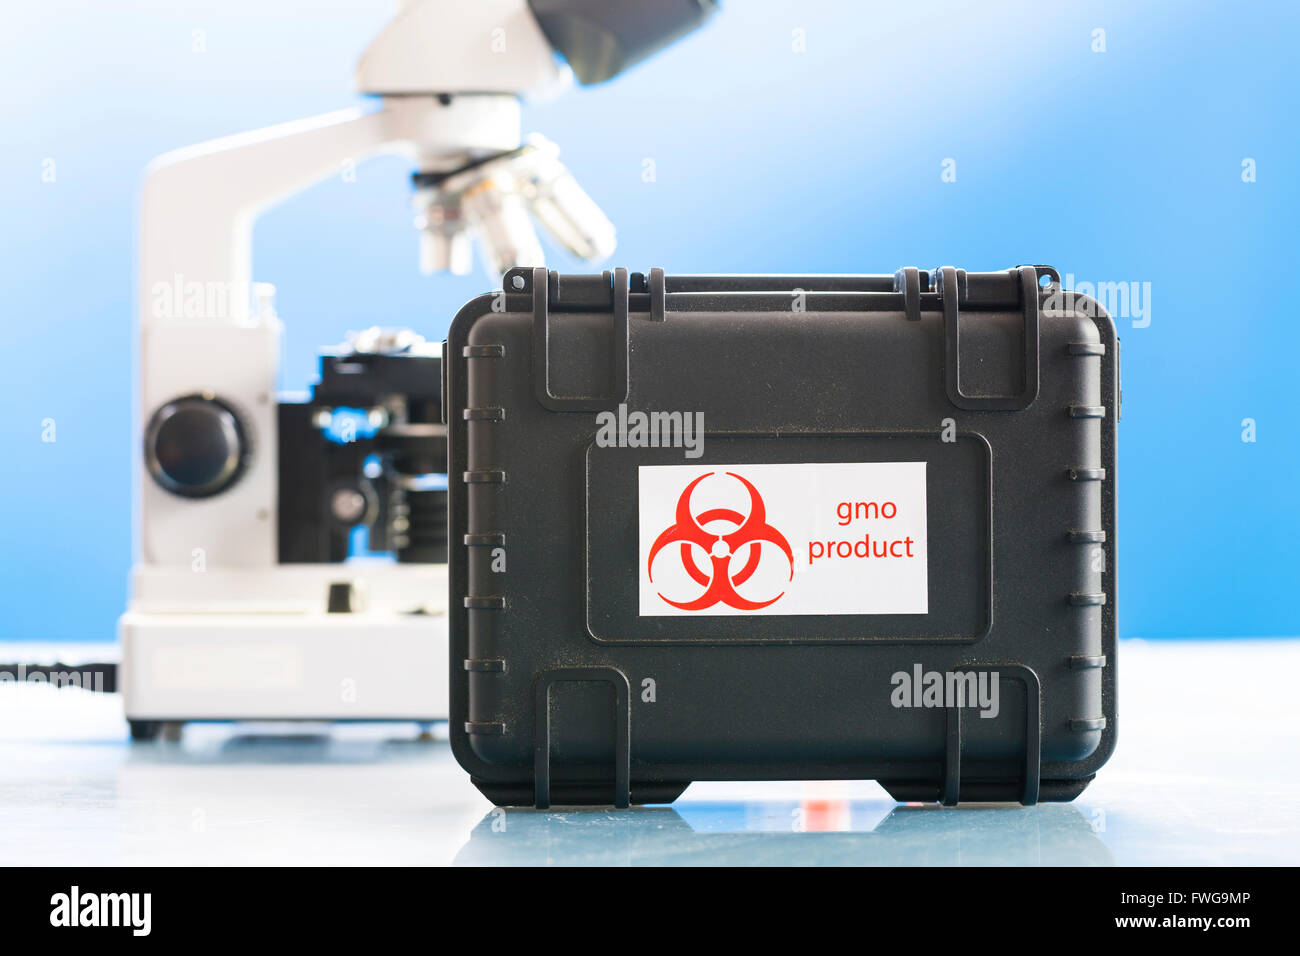 Genetically modified product samples in a protective case. - Stock Image